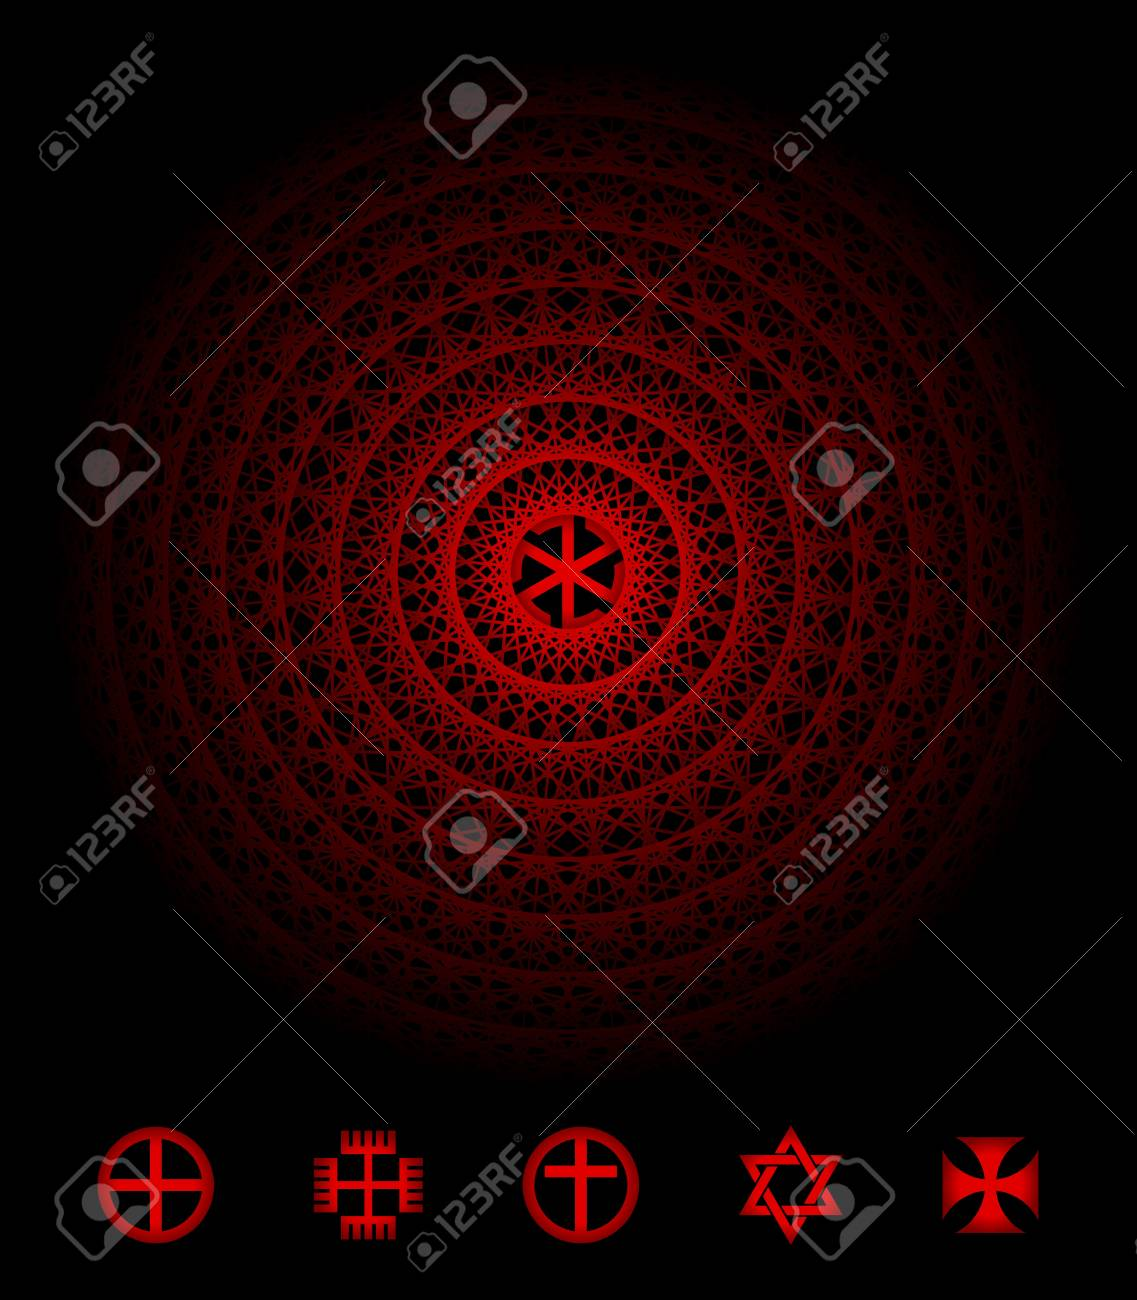 Sacred symbol decorated with abstract pattern Stock Vector - 18869680